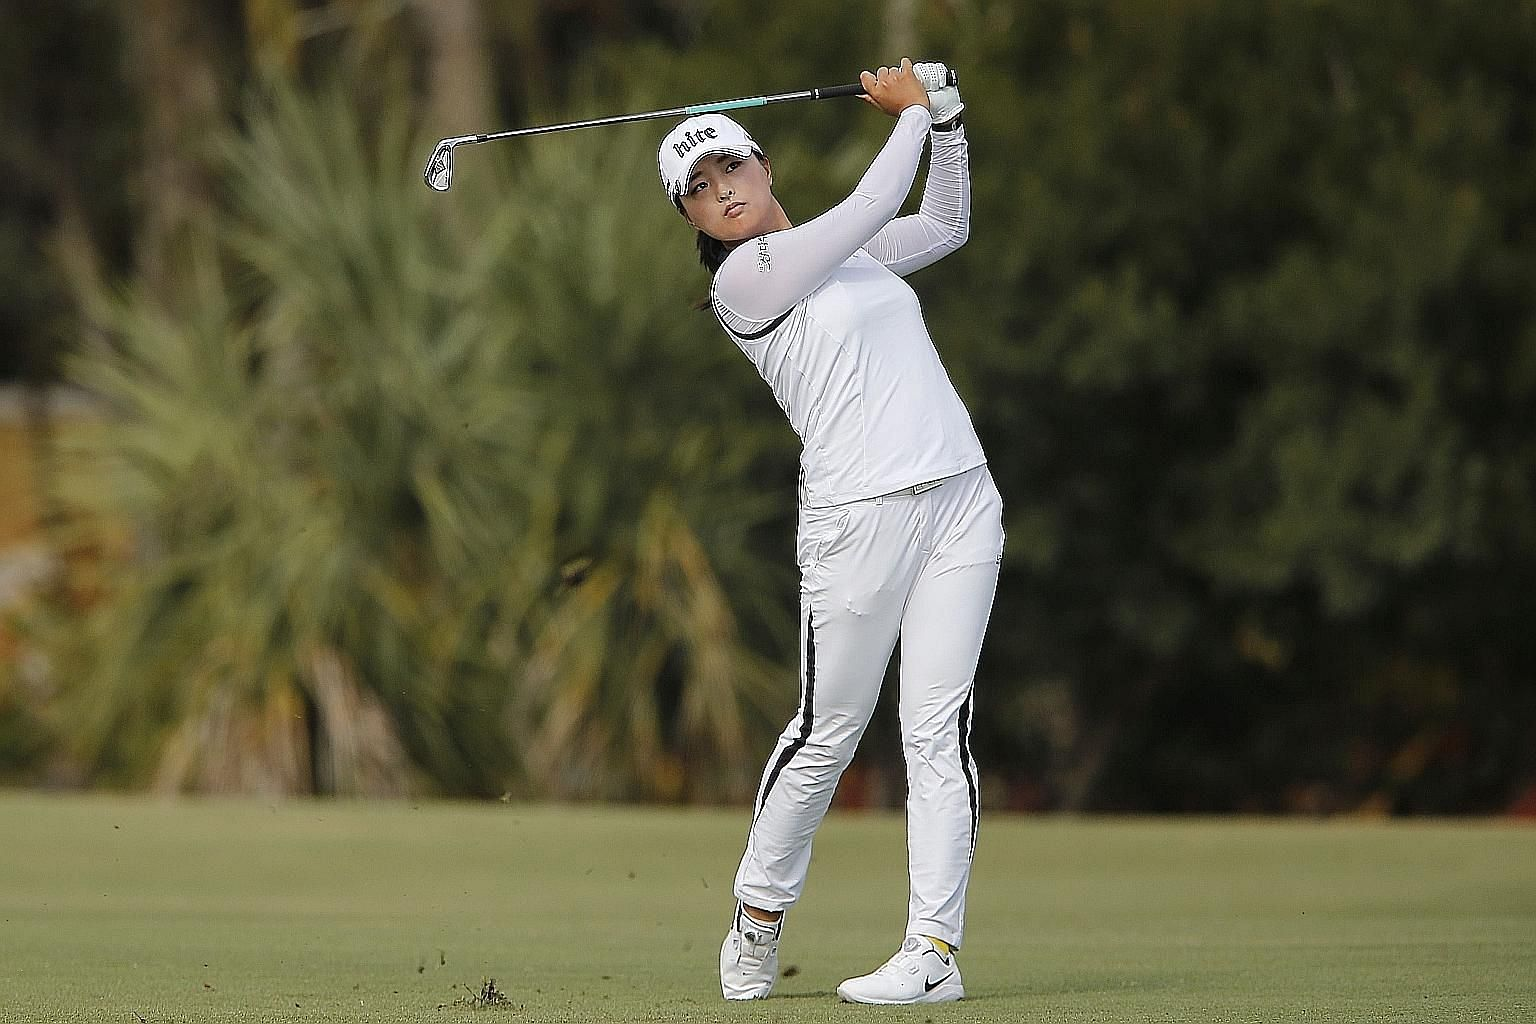 Ko Jin-young is set on adding the HSBC Women's Championship in Singapore to her resume of victories.